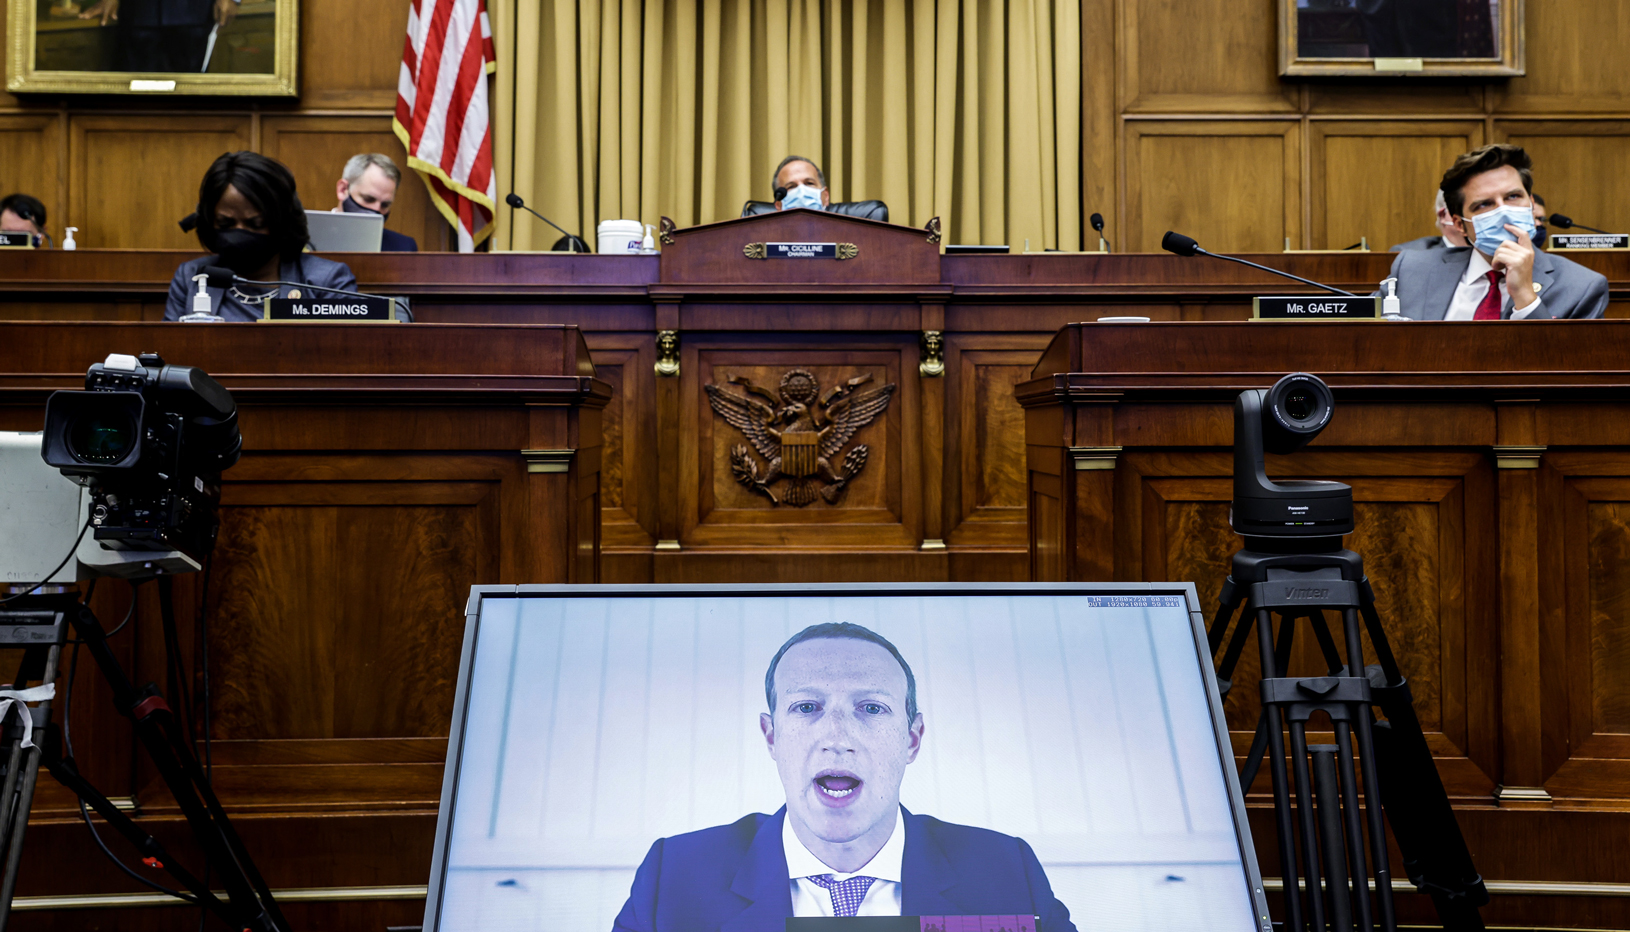 Mark Zuckerberg testifying for Congress via Zoom.